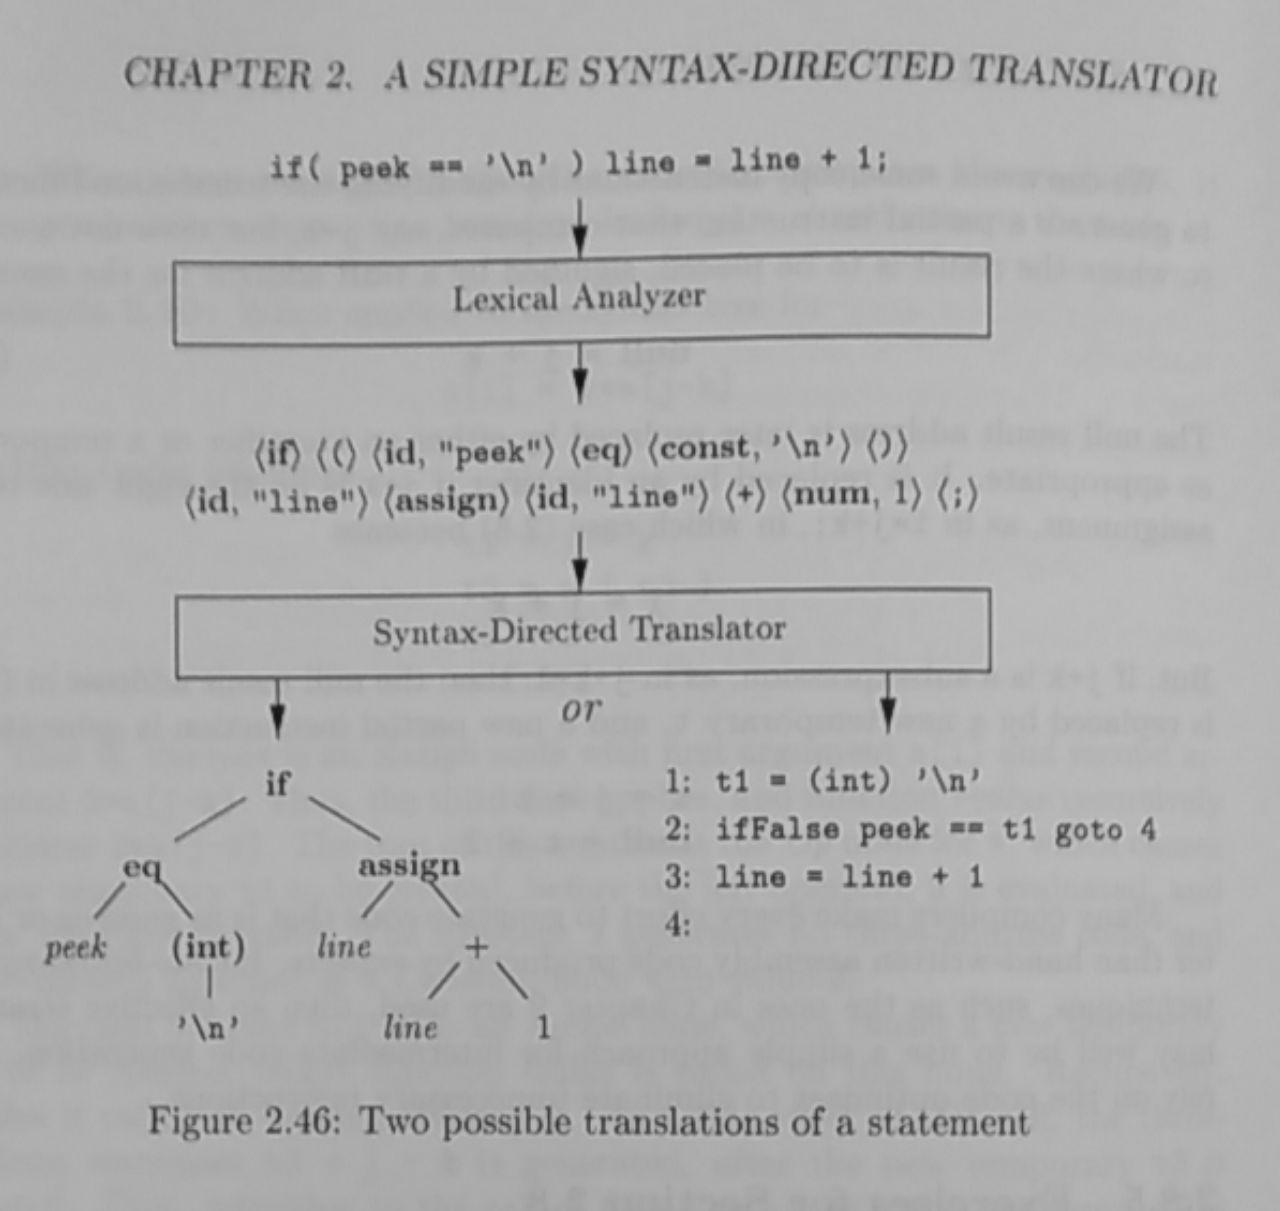 A schema representing simple syntax-directed translation